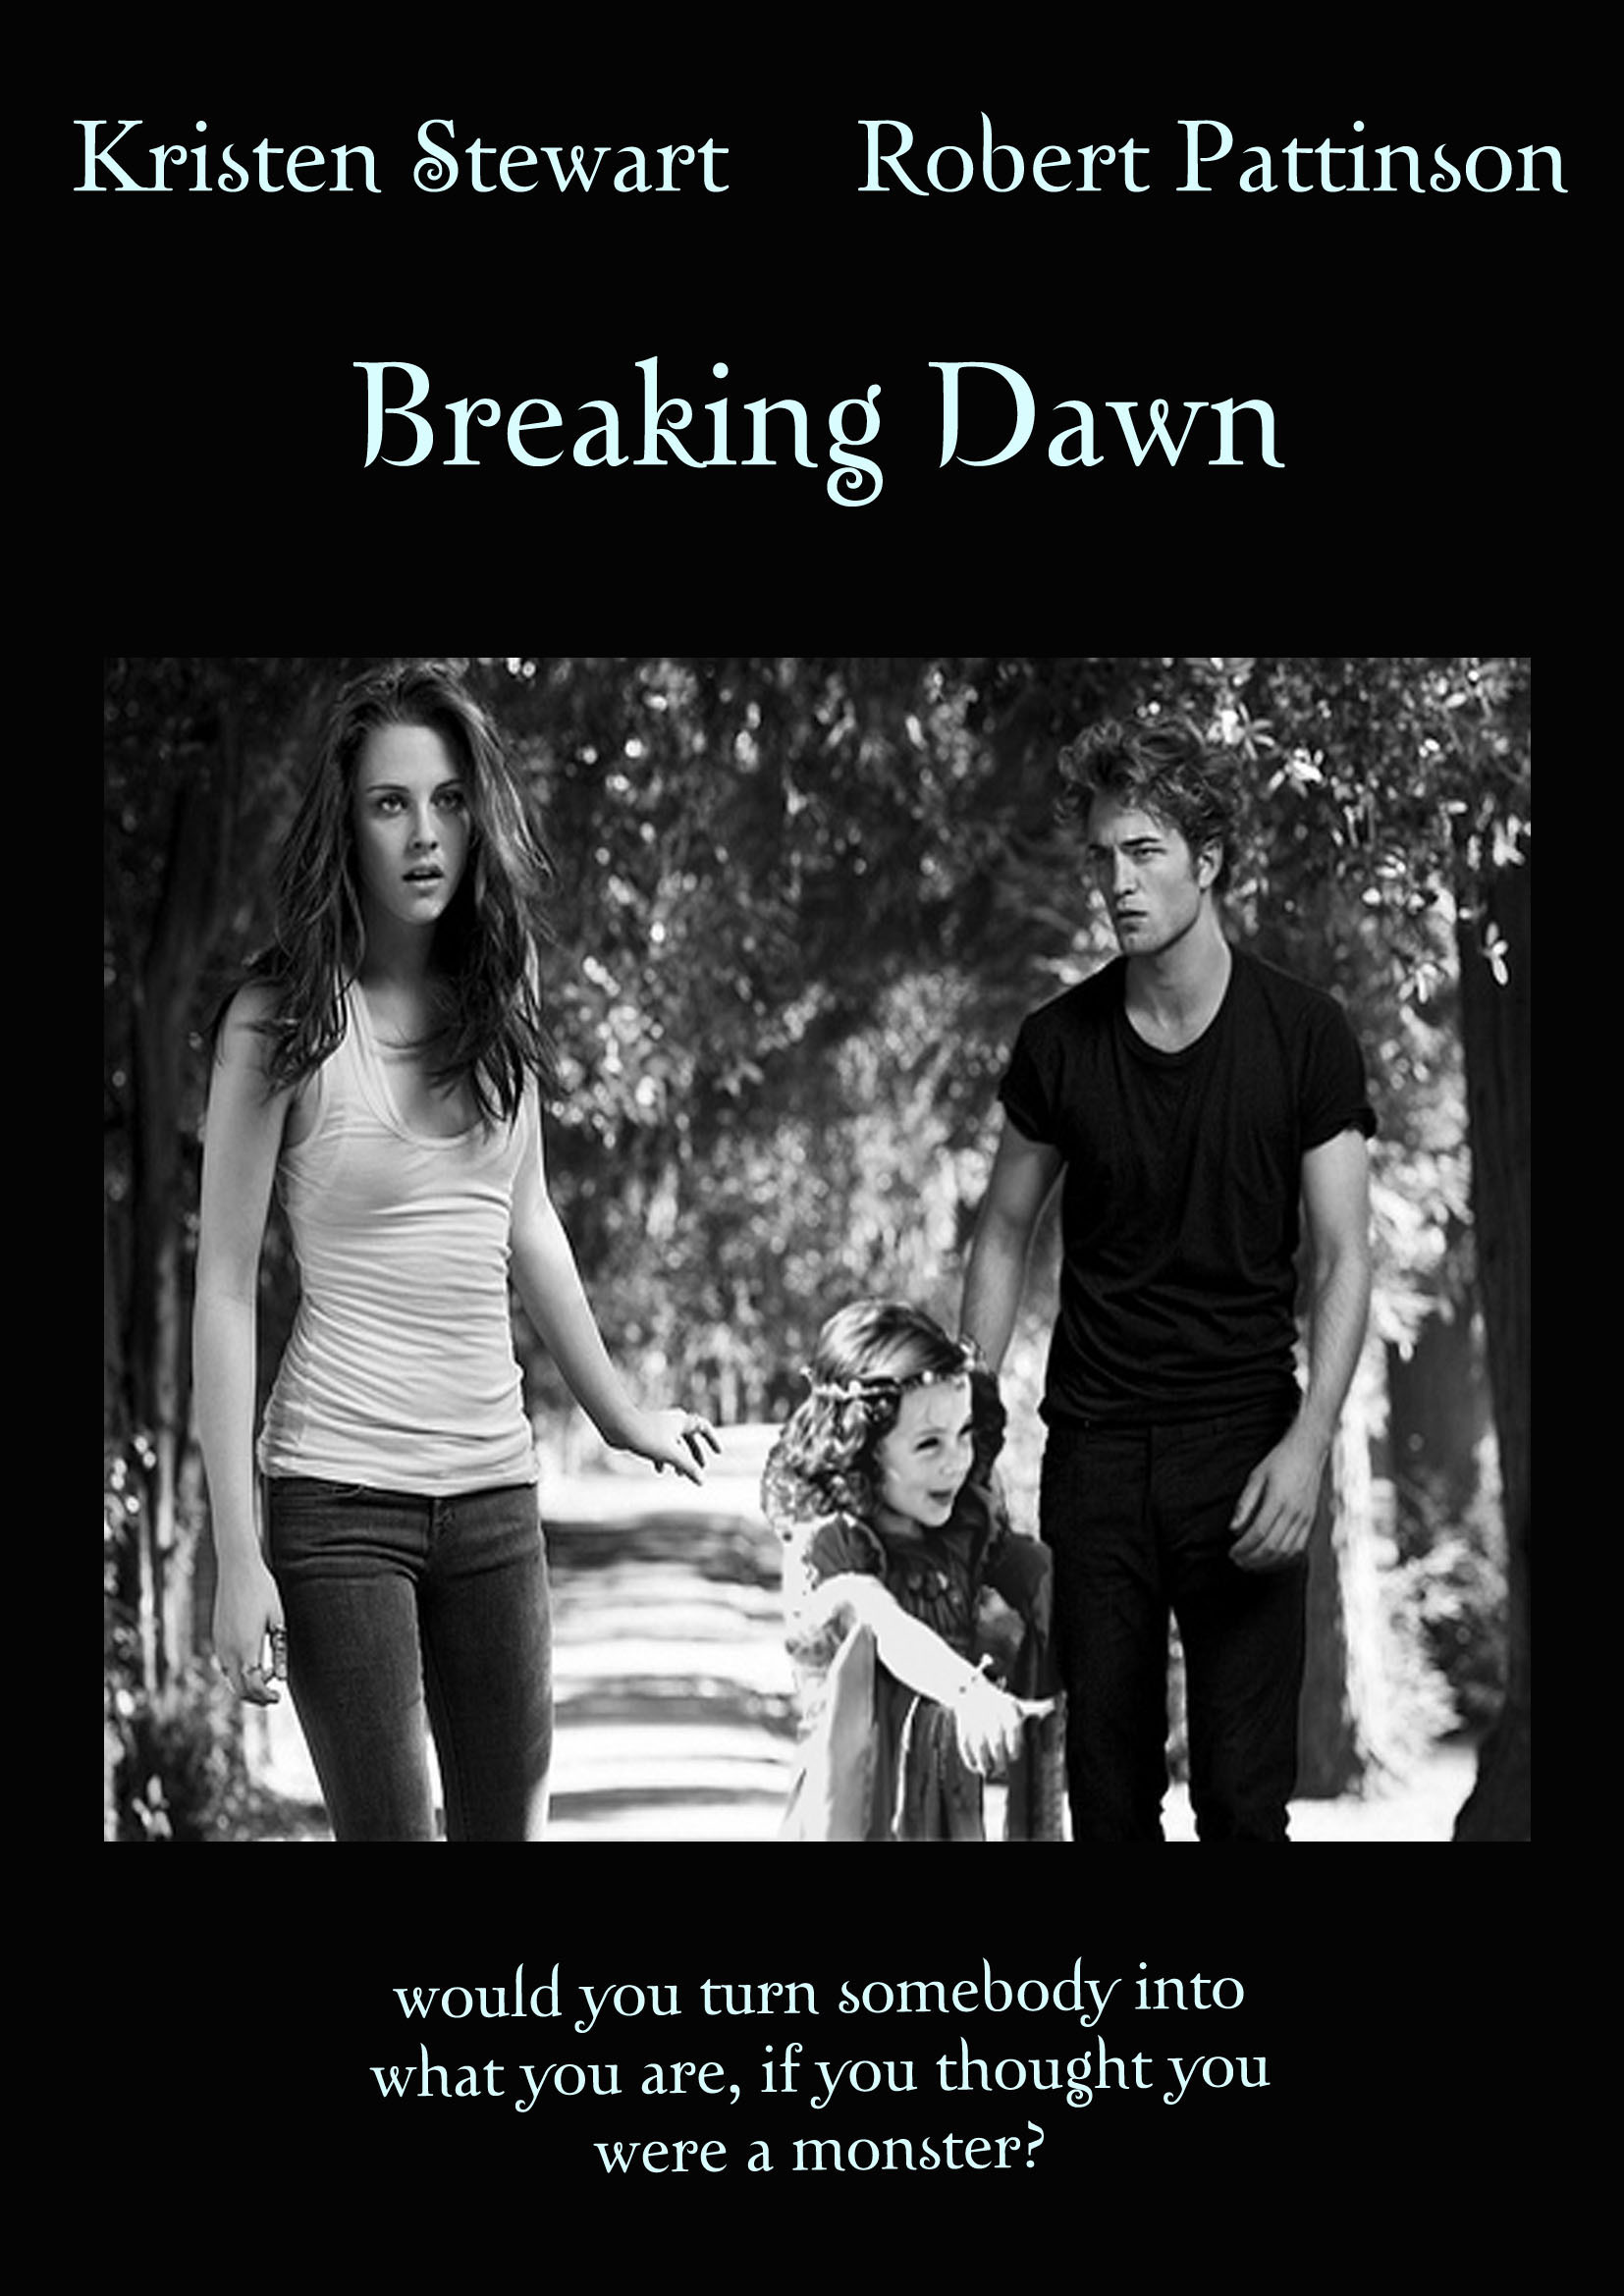 http://images2.fanpop.com/image/photos/9200000/Breaking-Dawn-Movie-Cover-breaking-dawn-9219850-1654-2339.jpg